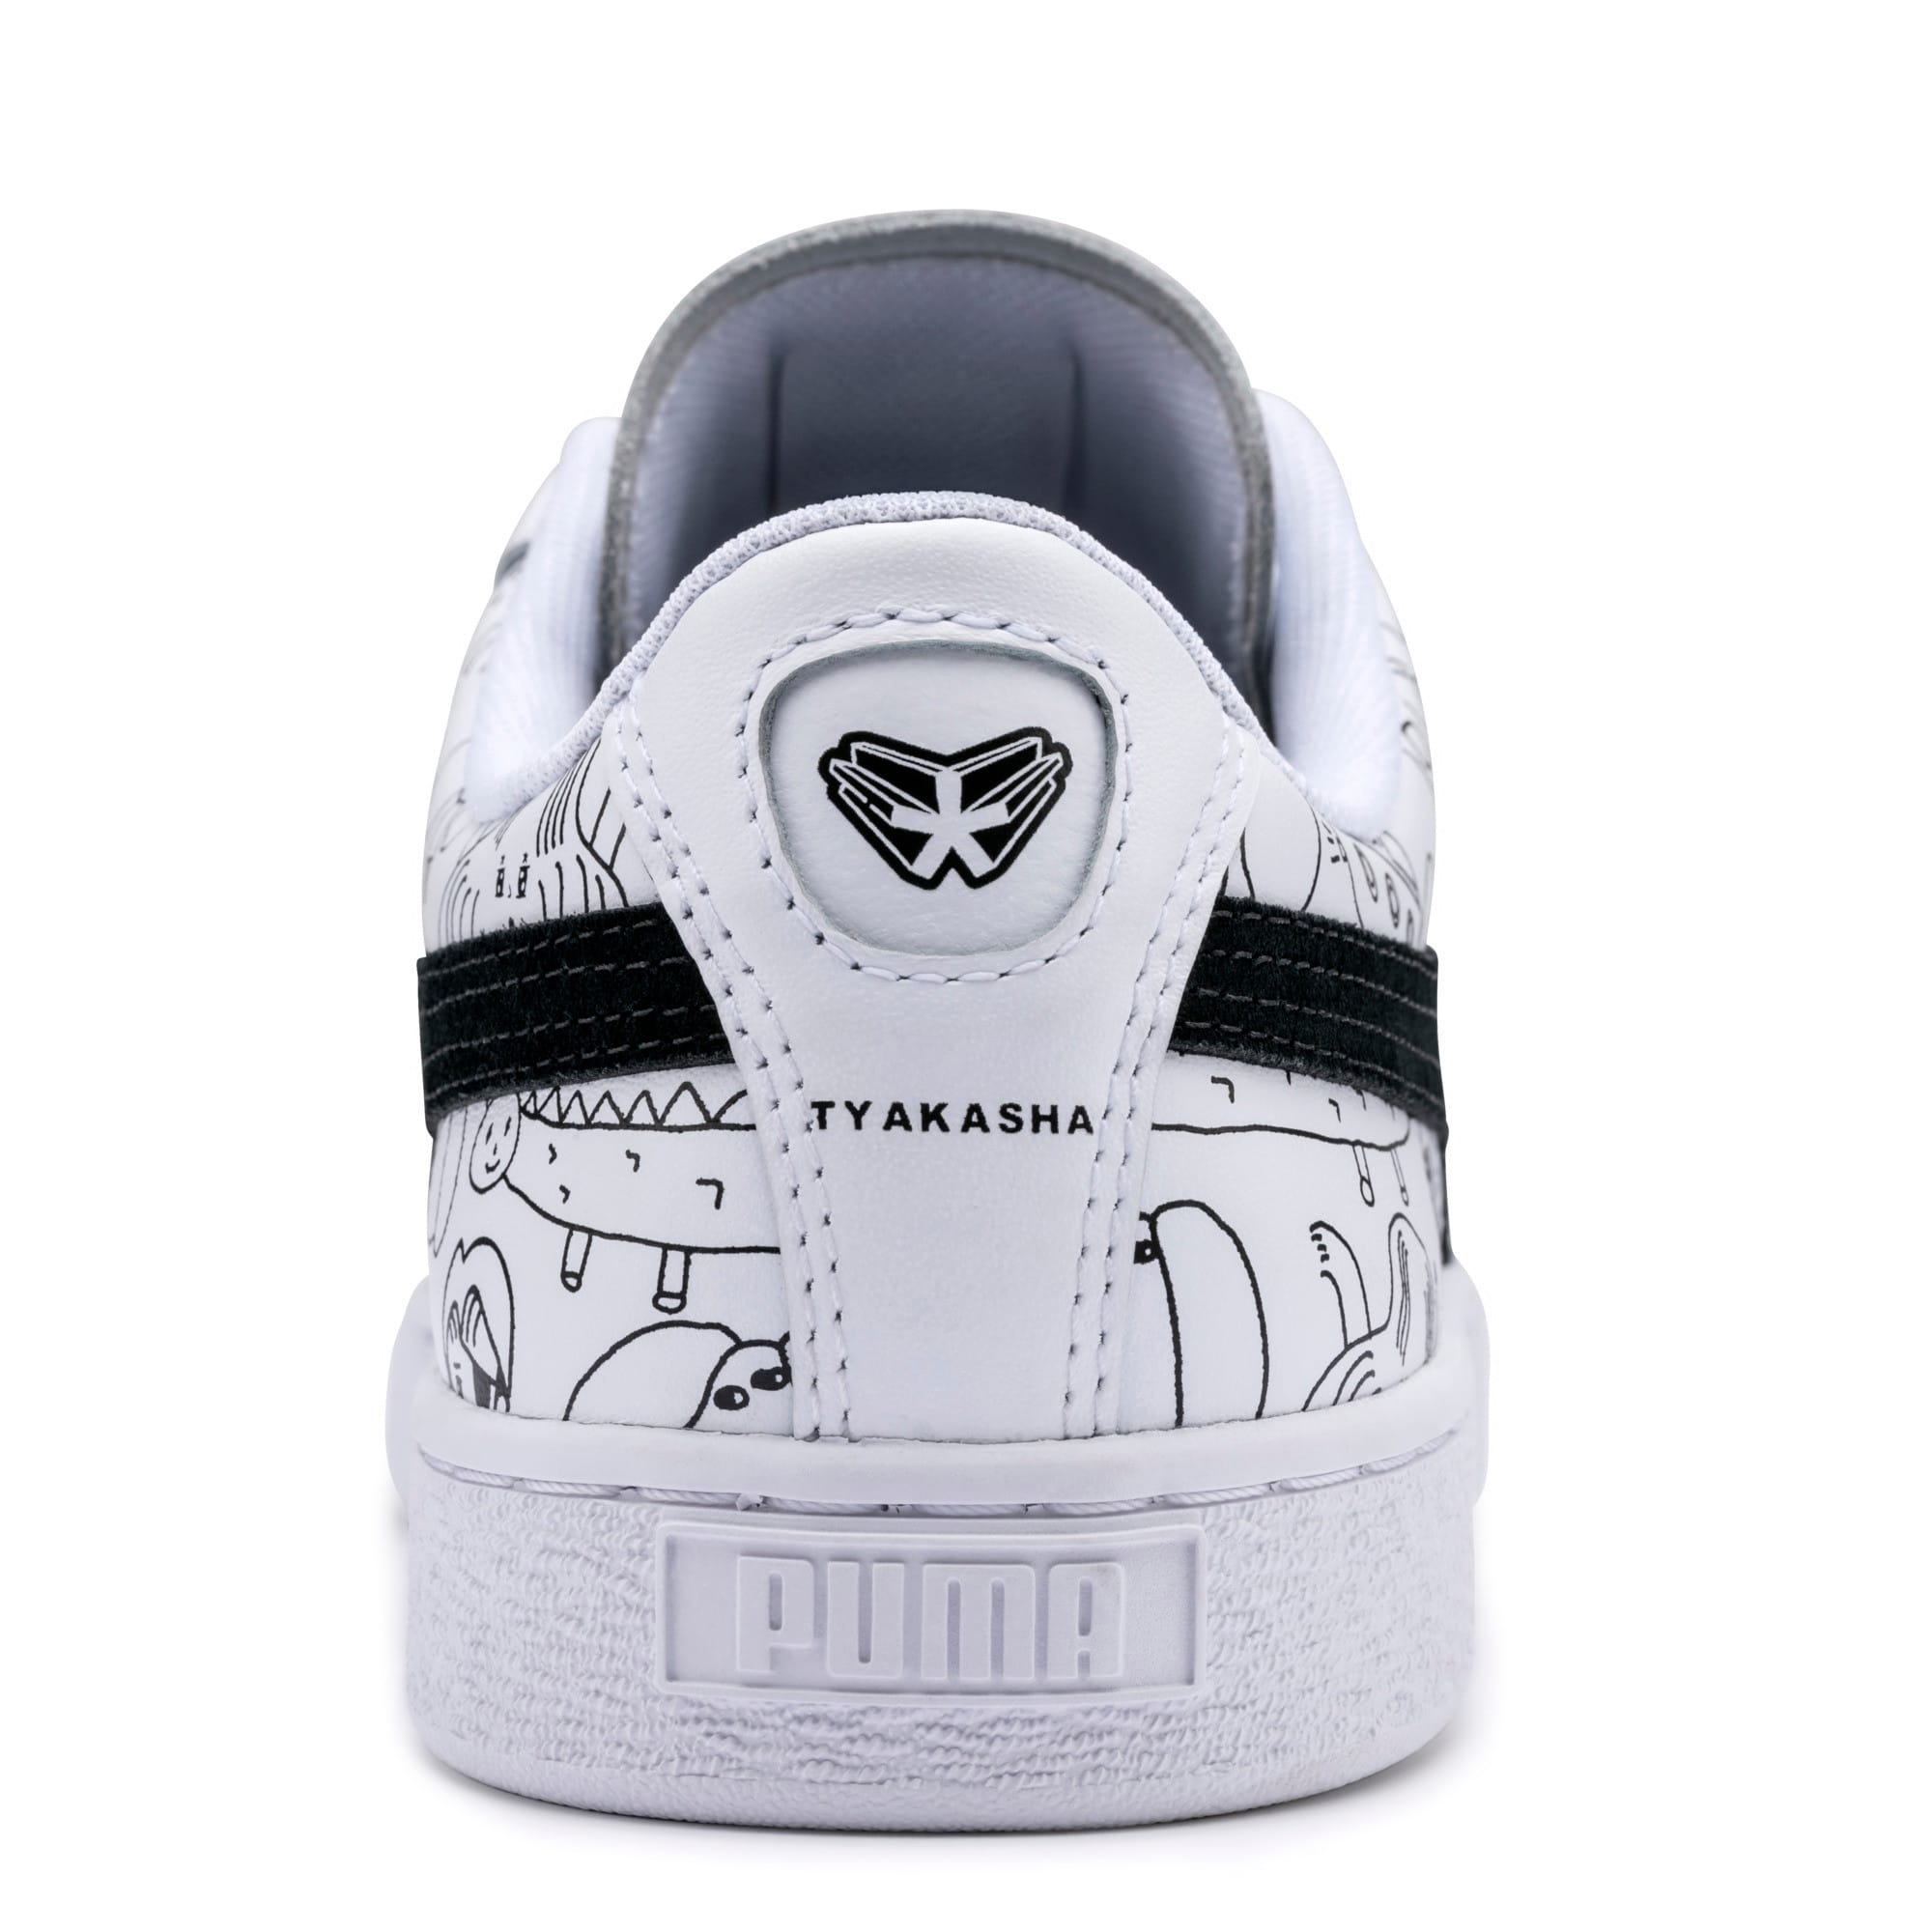 Thumbnail 10 of PUMA x TYAKASHA Basket Trainers, Puma White-Puma Black, medium